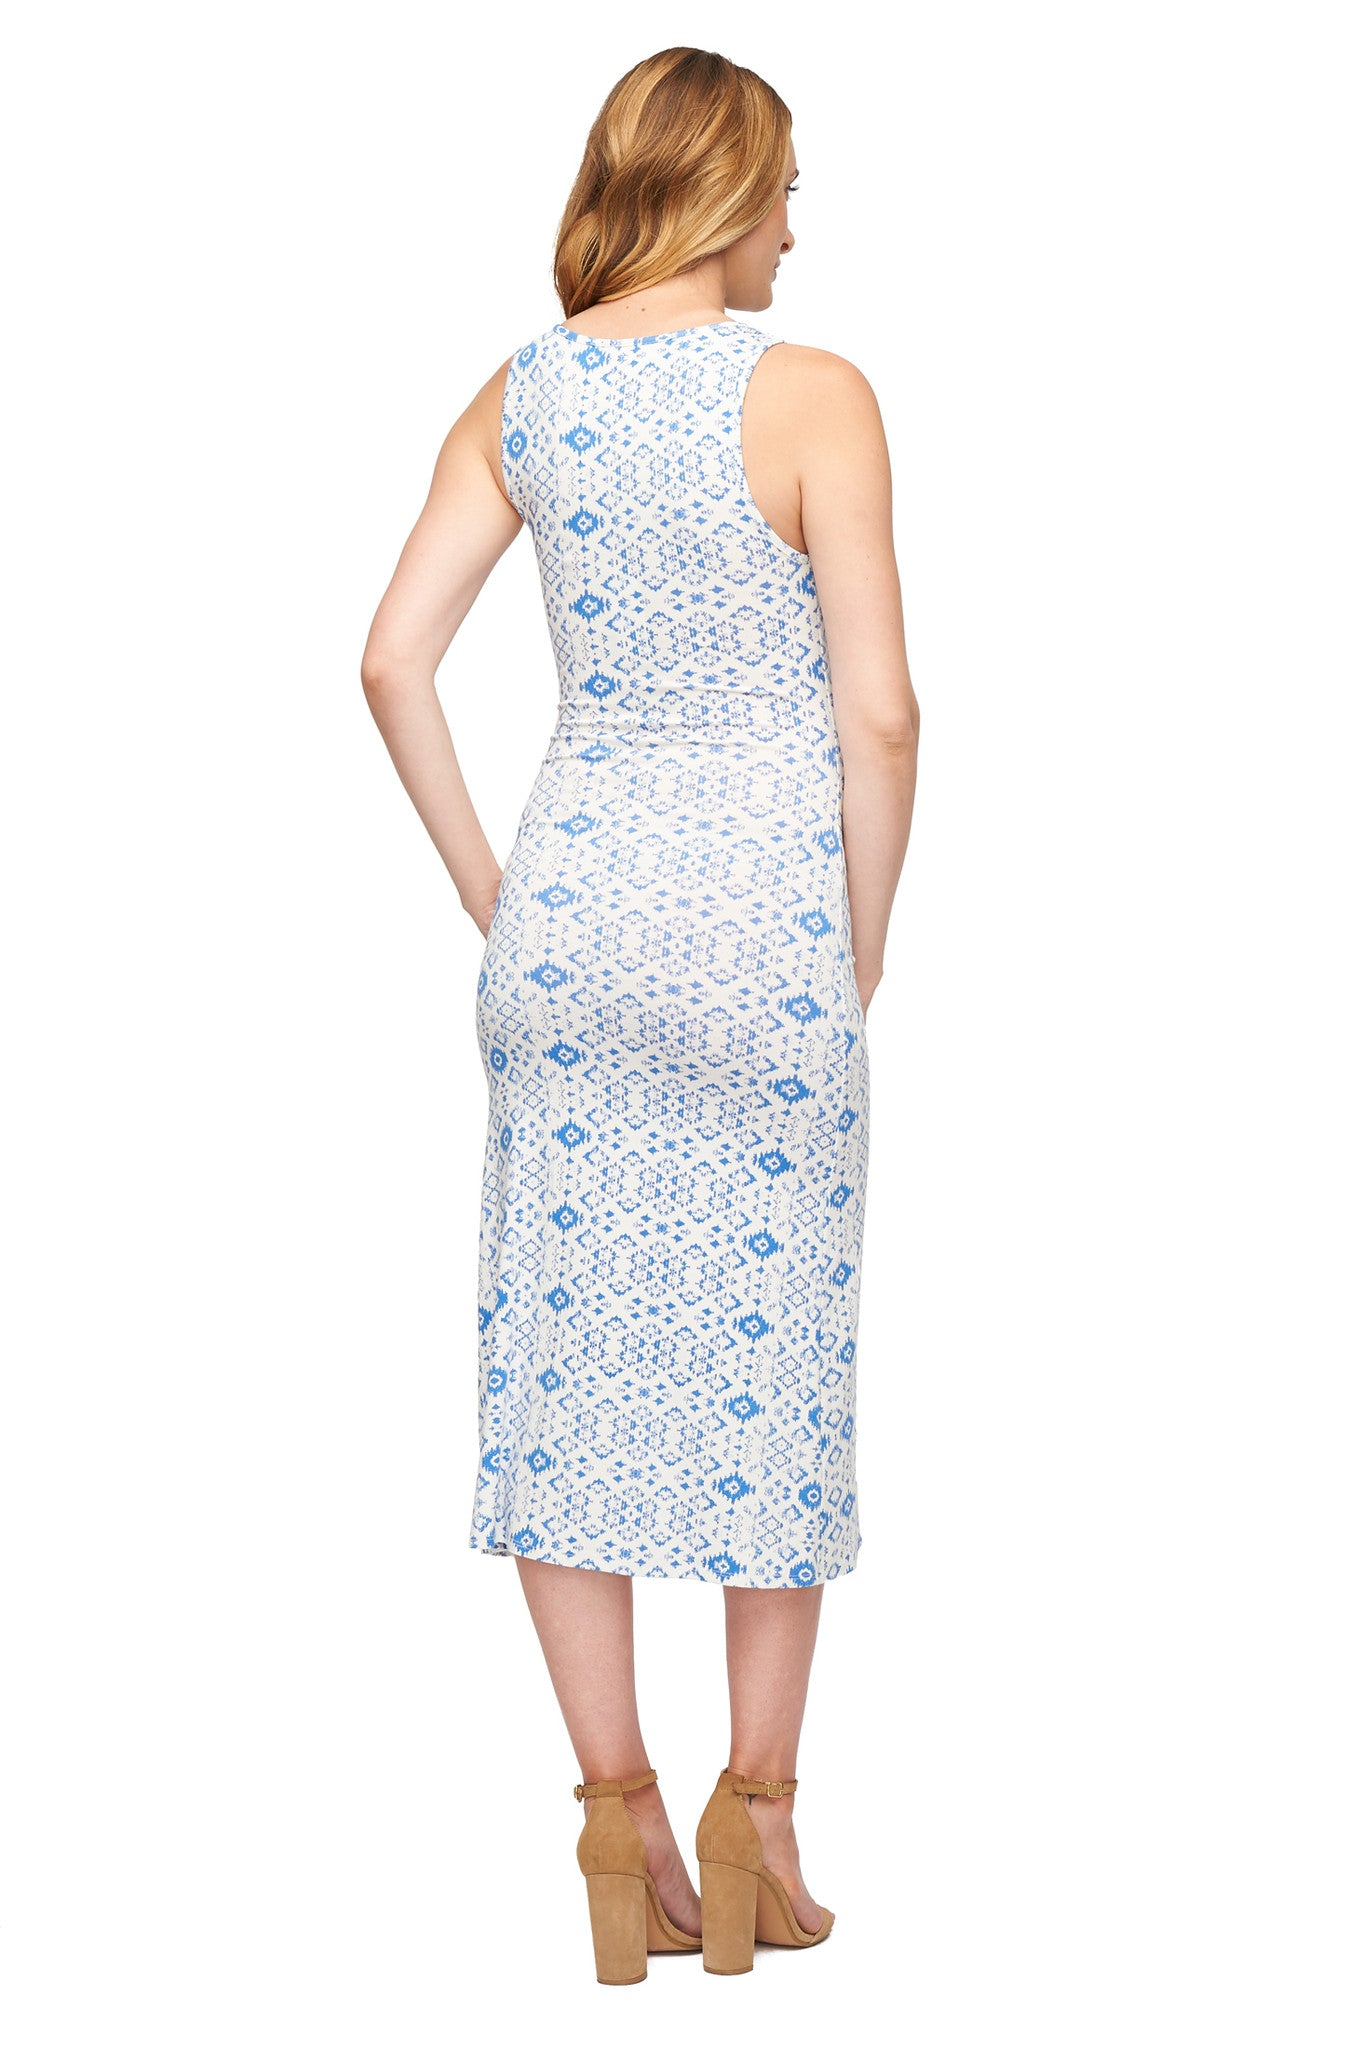 Yahaira Dress Print - Delta Medallion